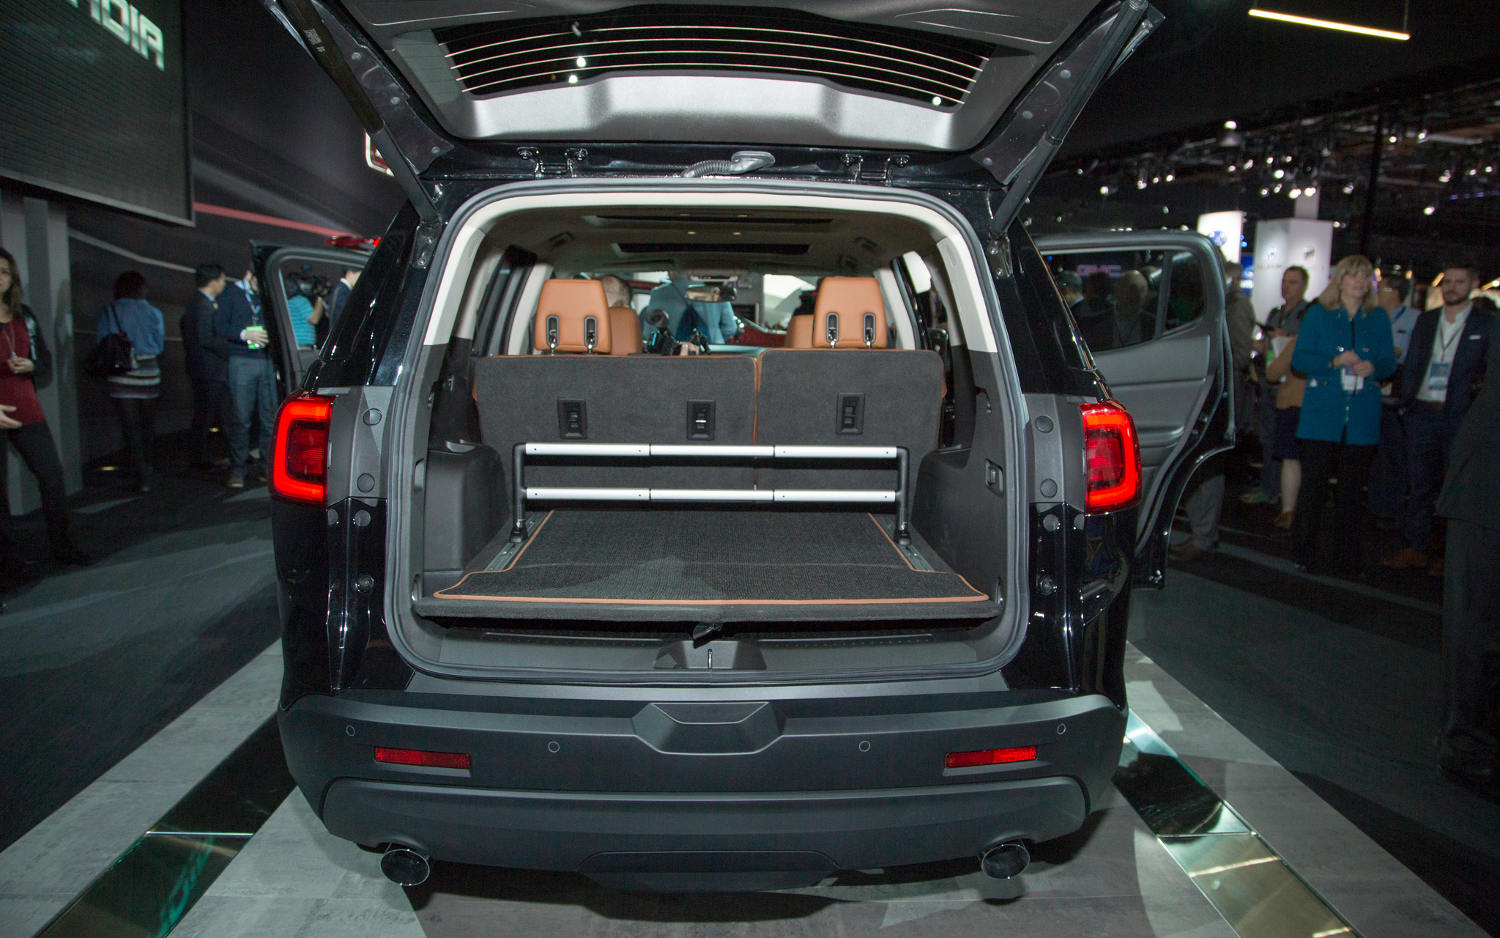 2017 gmc acadia interior lights. Black Bedroom Furniture Sets. Home Design Ideas